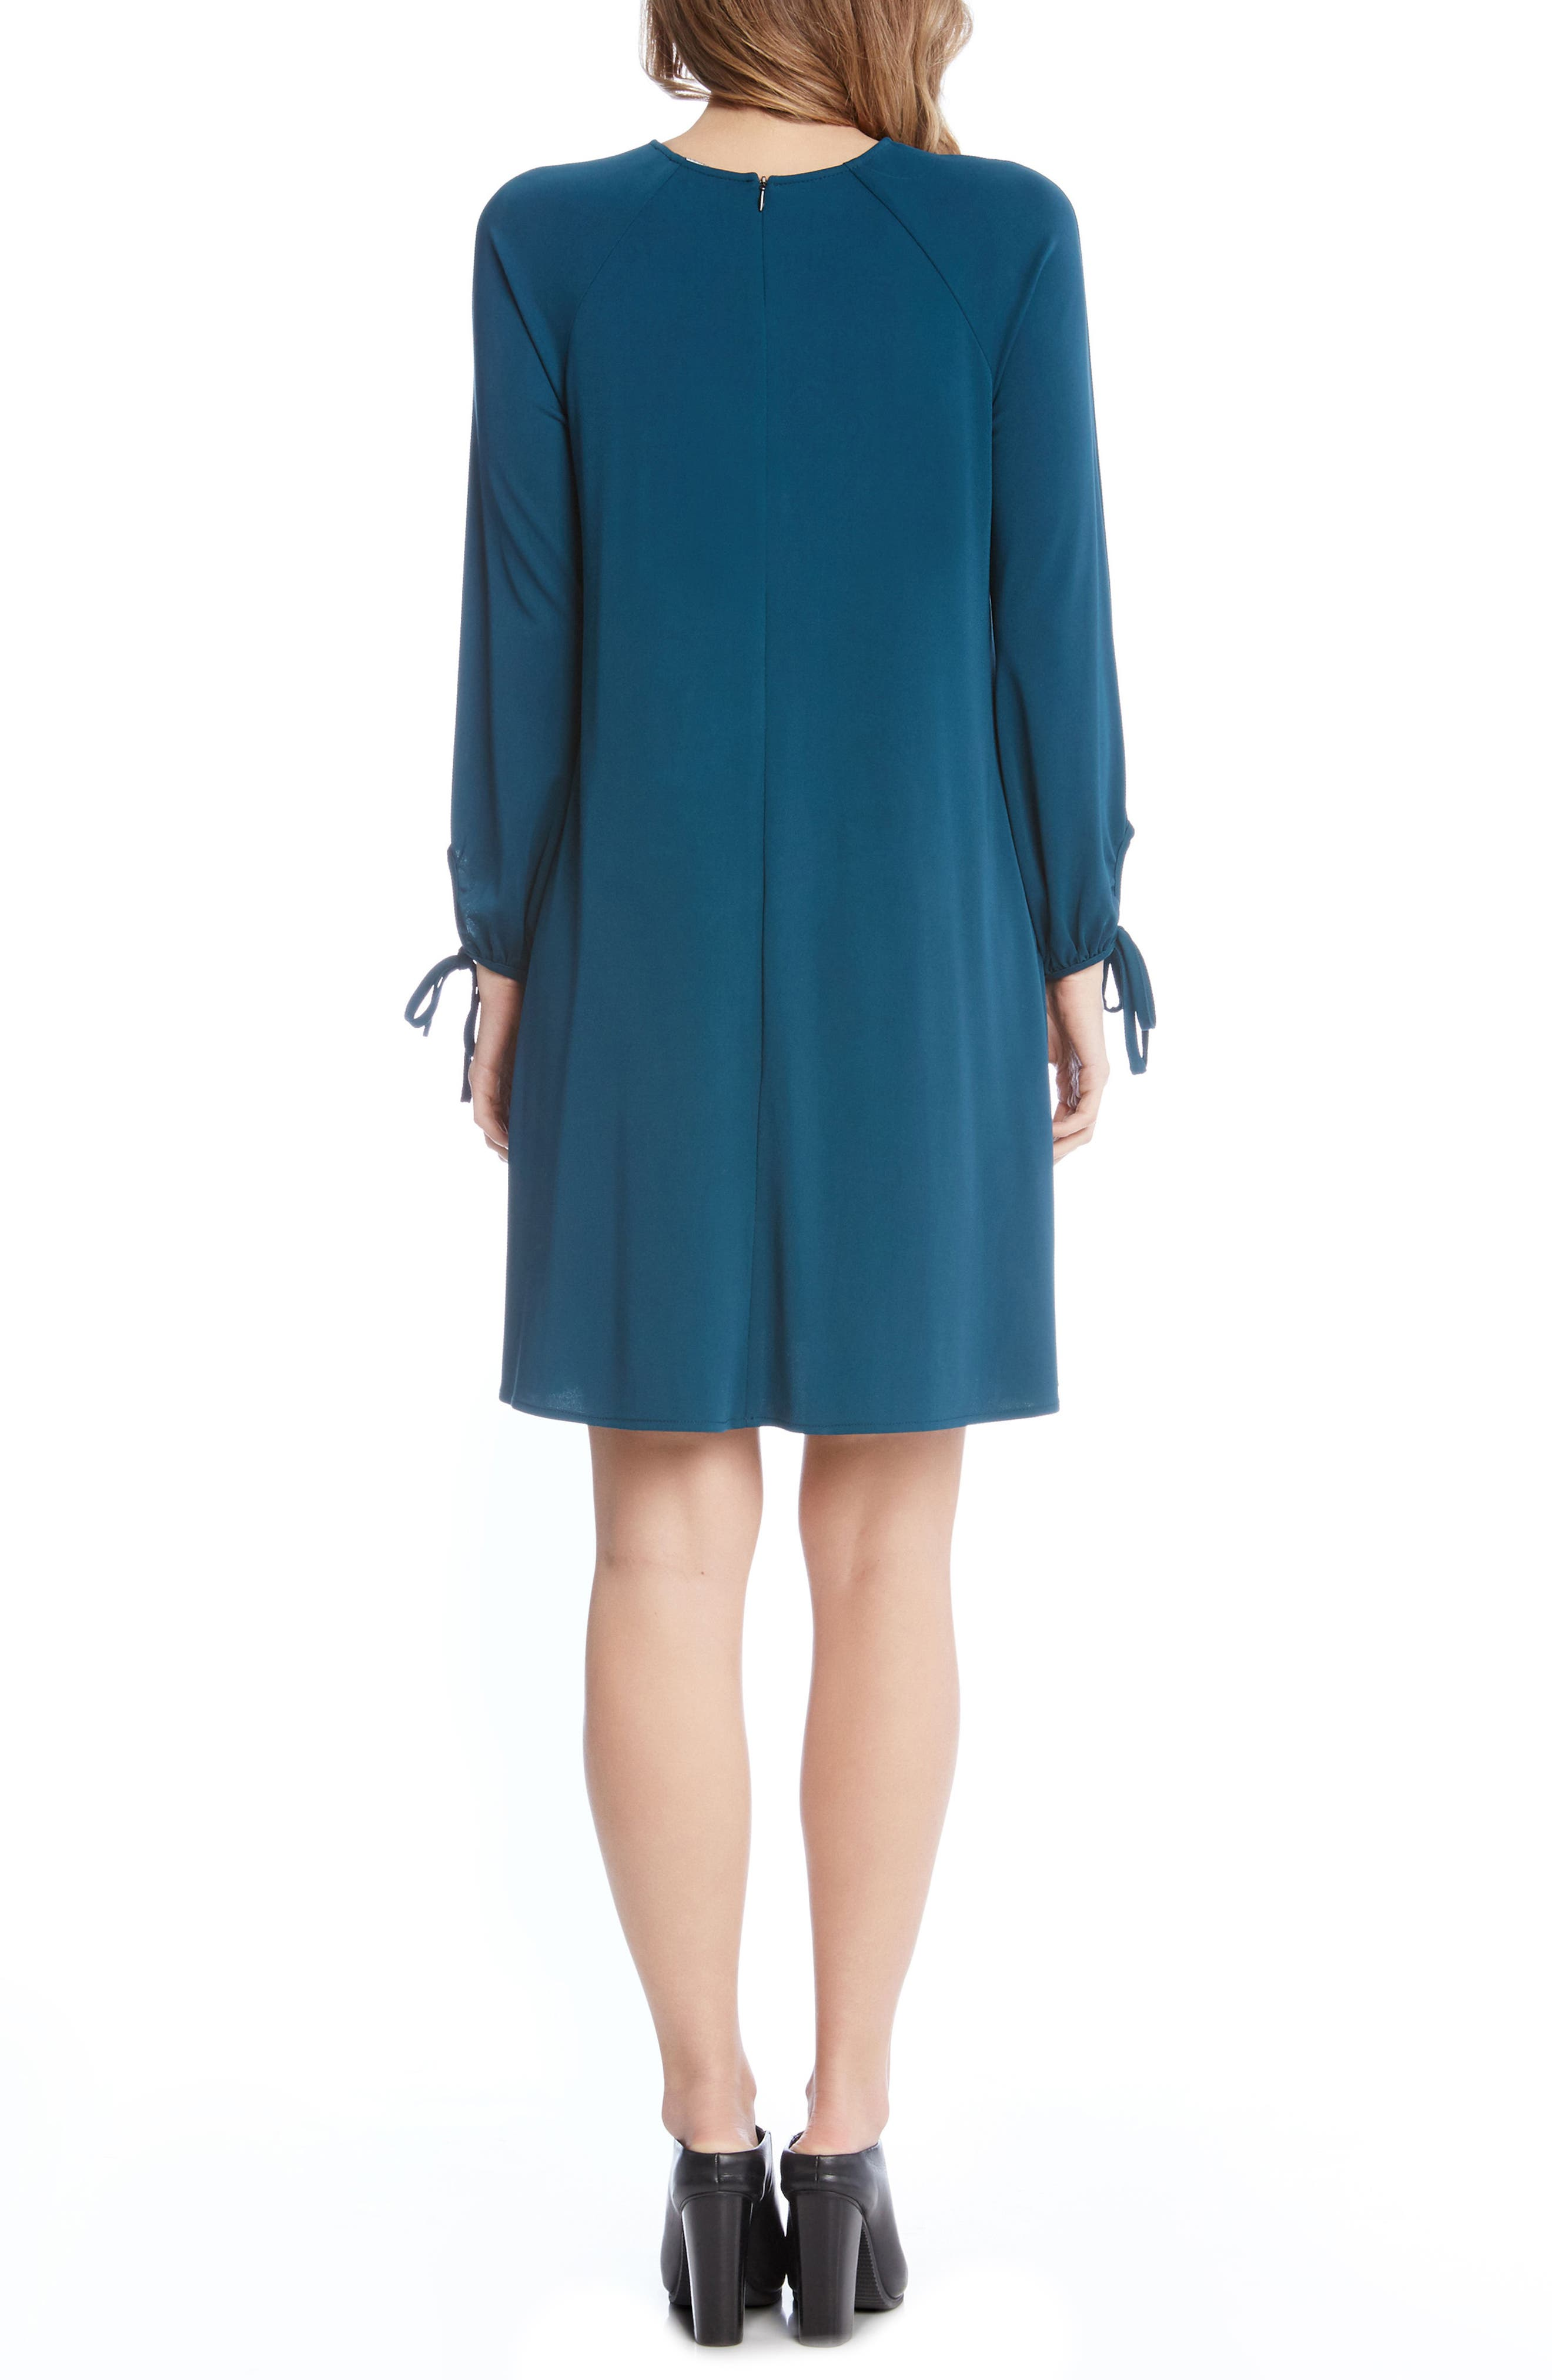 Tie Sleeve Shift Dress,                             Alternate thumbnail 3, color,                             Teal